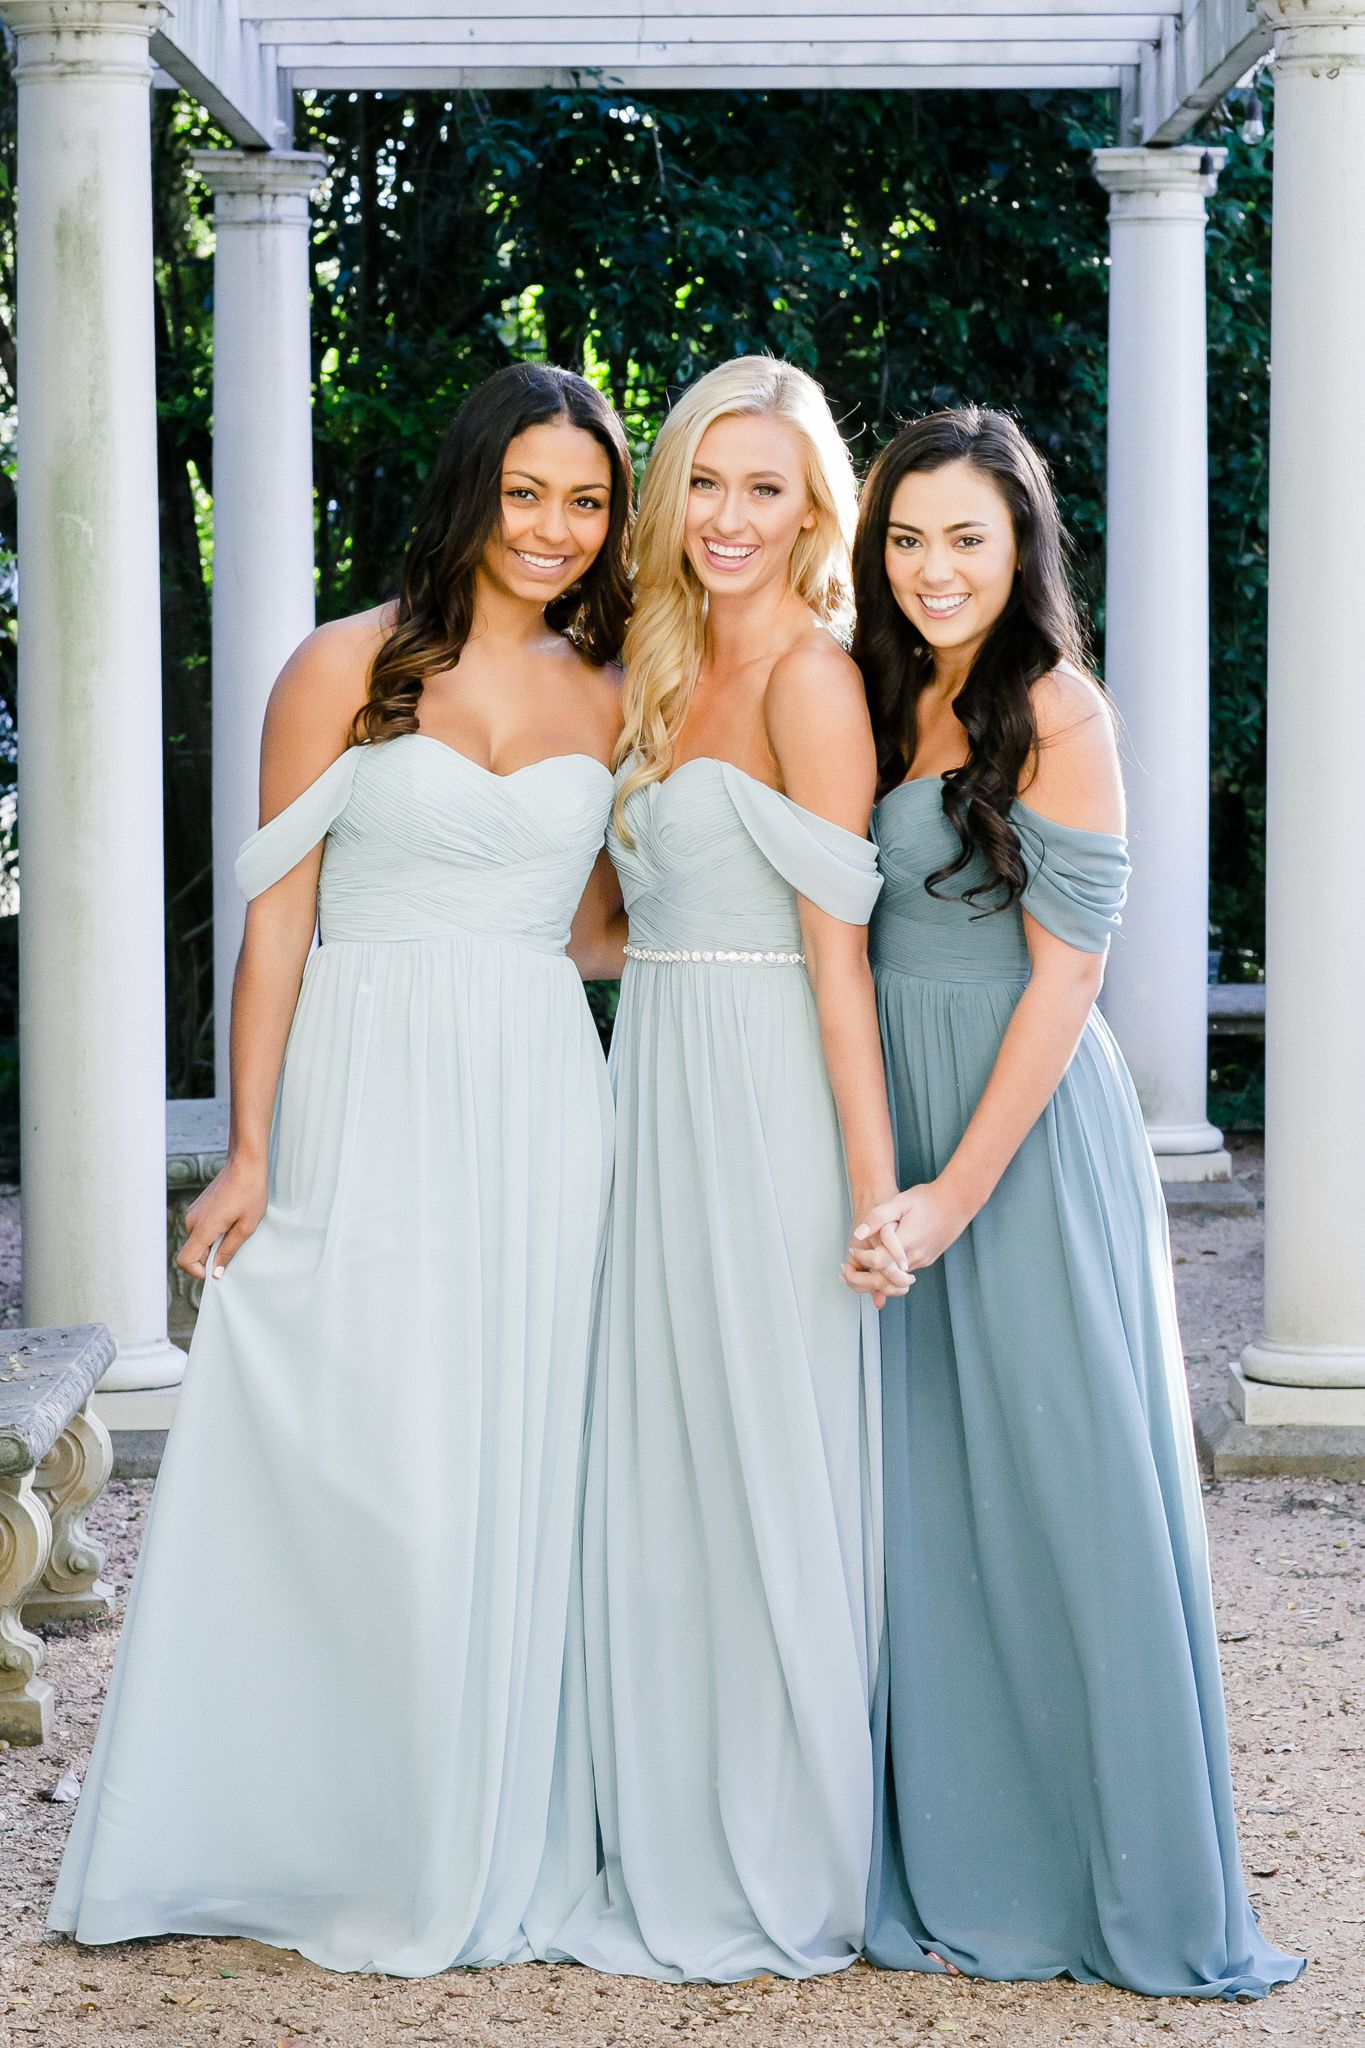 $185 Kennedy Chiffon Convertible Dress #bridesmaids